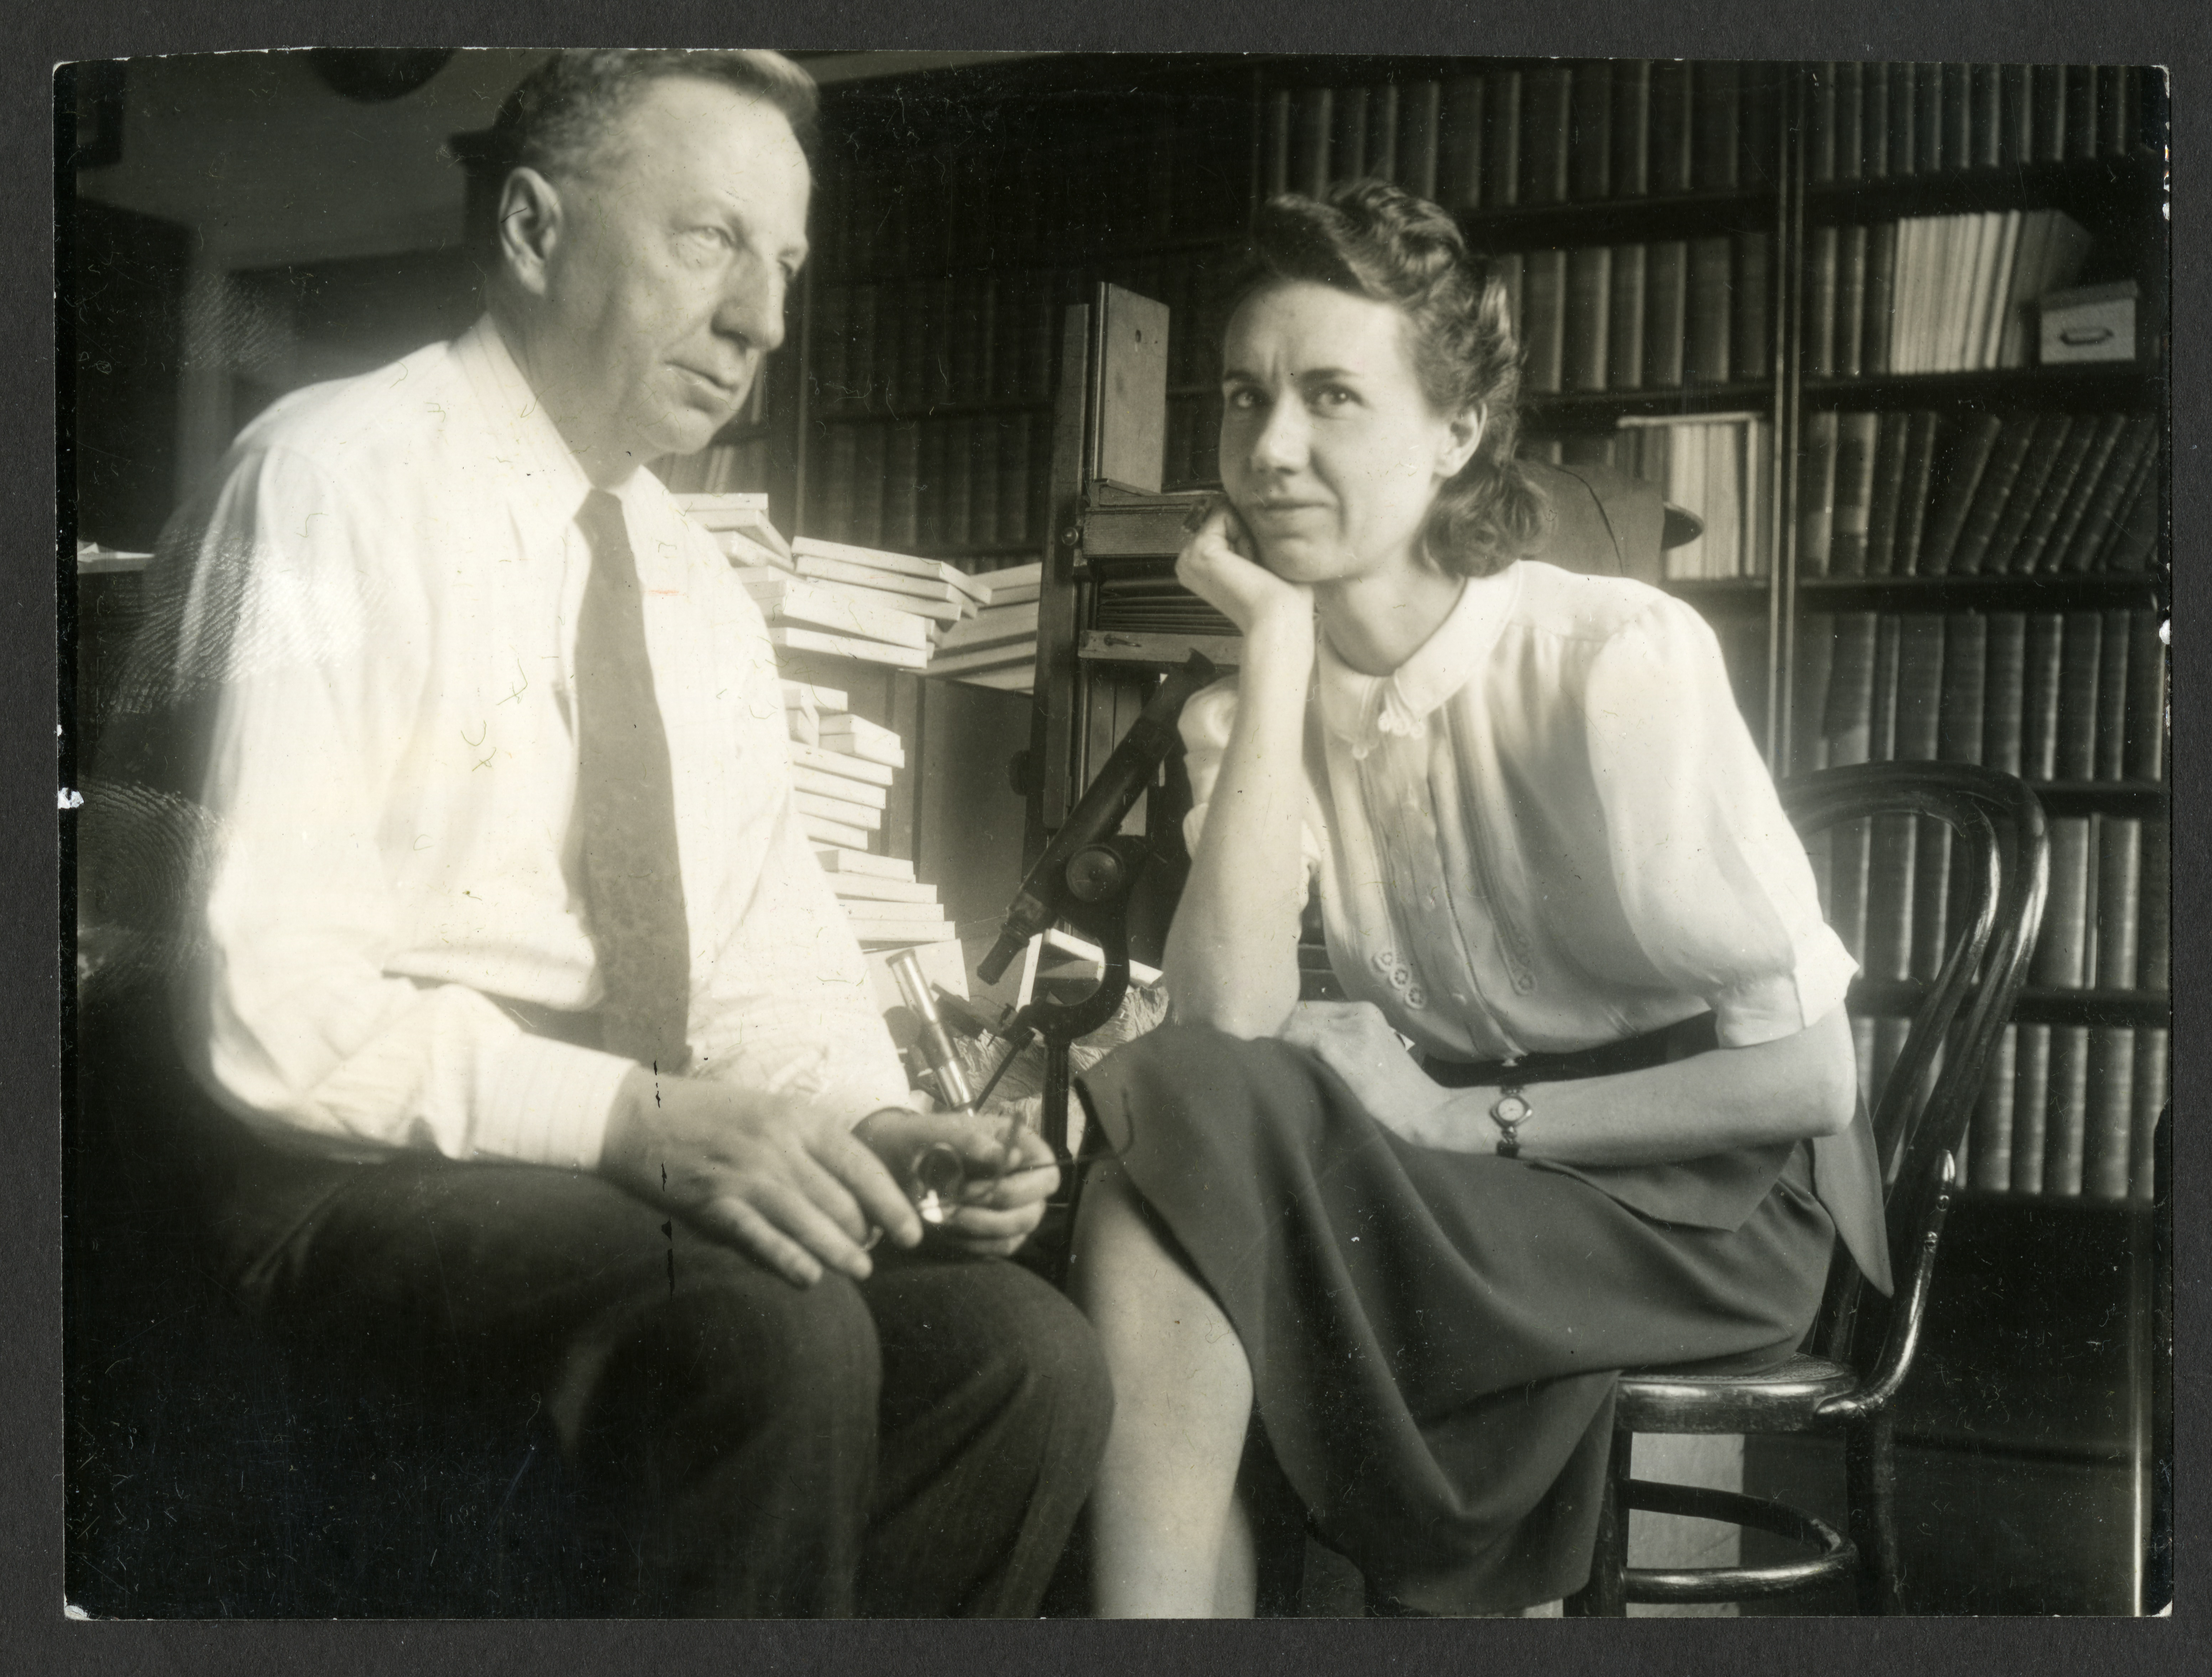 Helena Weiss sitting with her legs crossed and arms bent, with her supervisor Dr. Ray Bassler in an